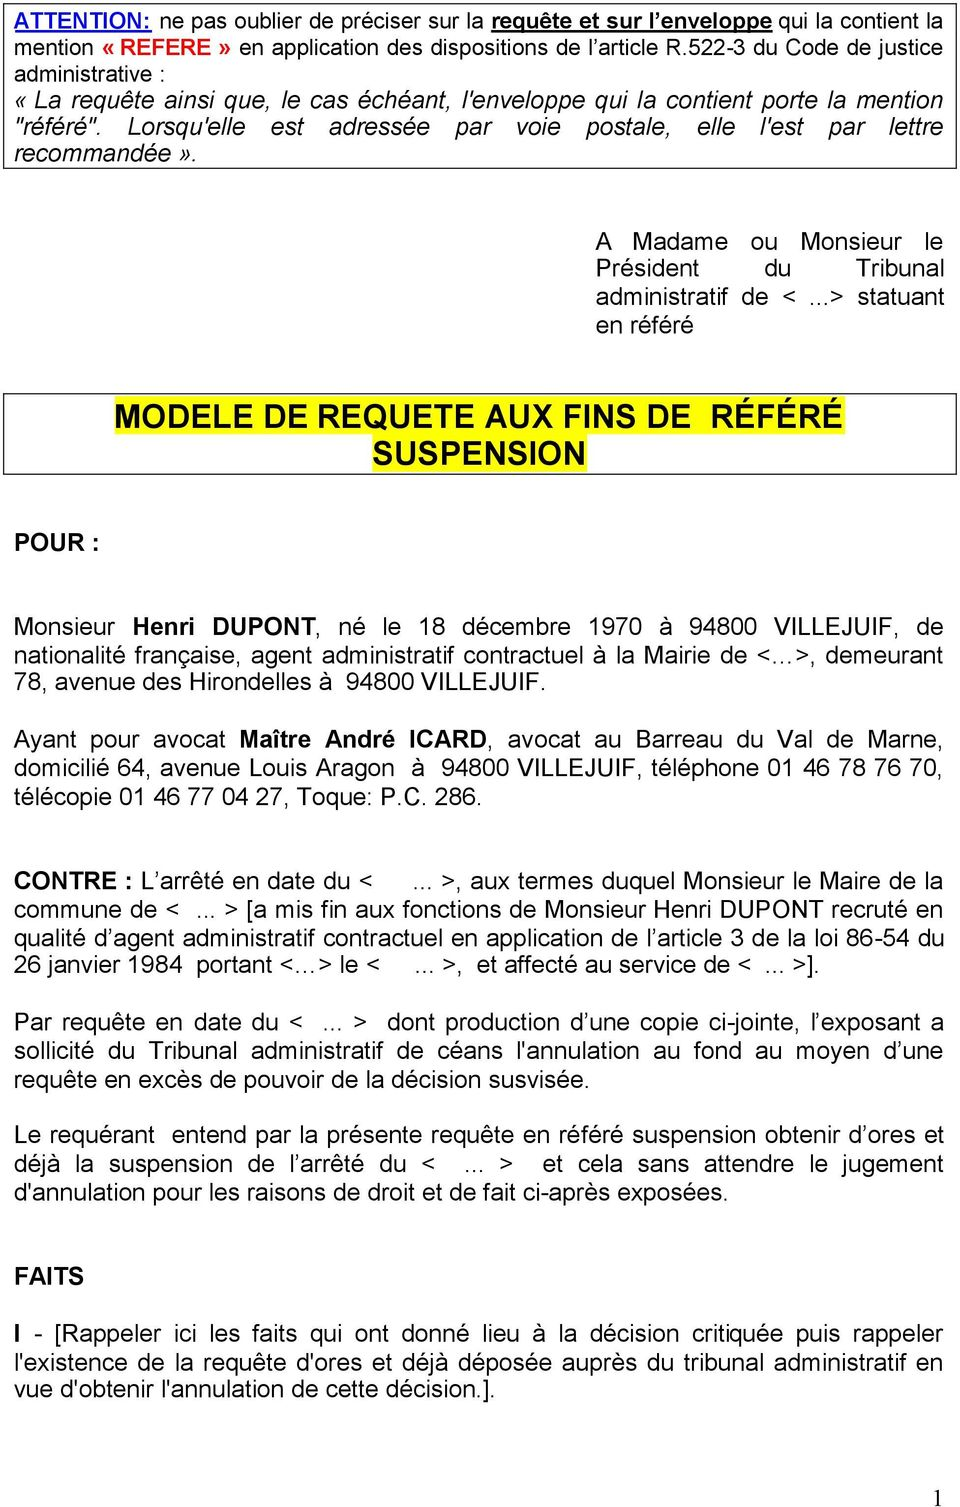 Modele De Requete Aux Fins De Refere Suspension Pdf Free Download